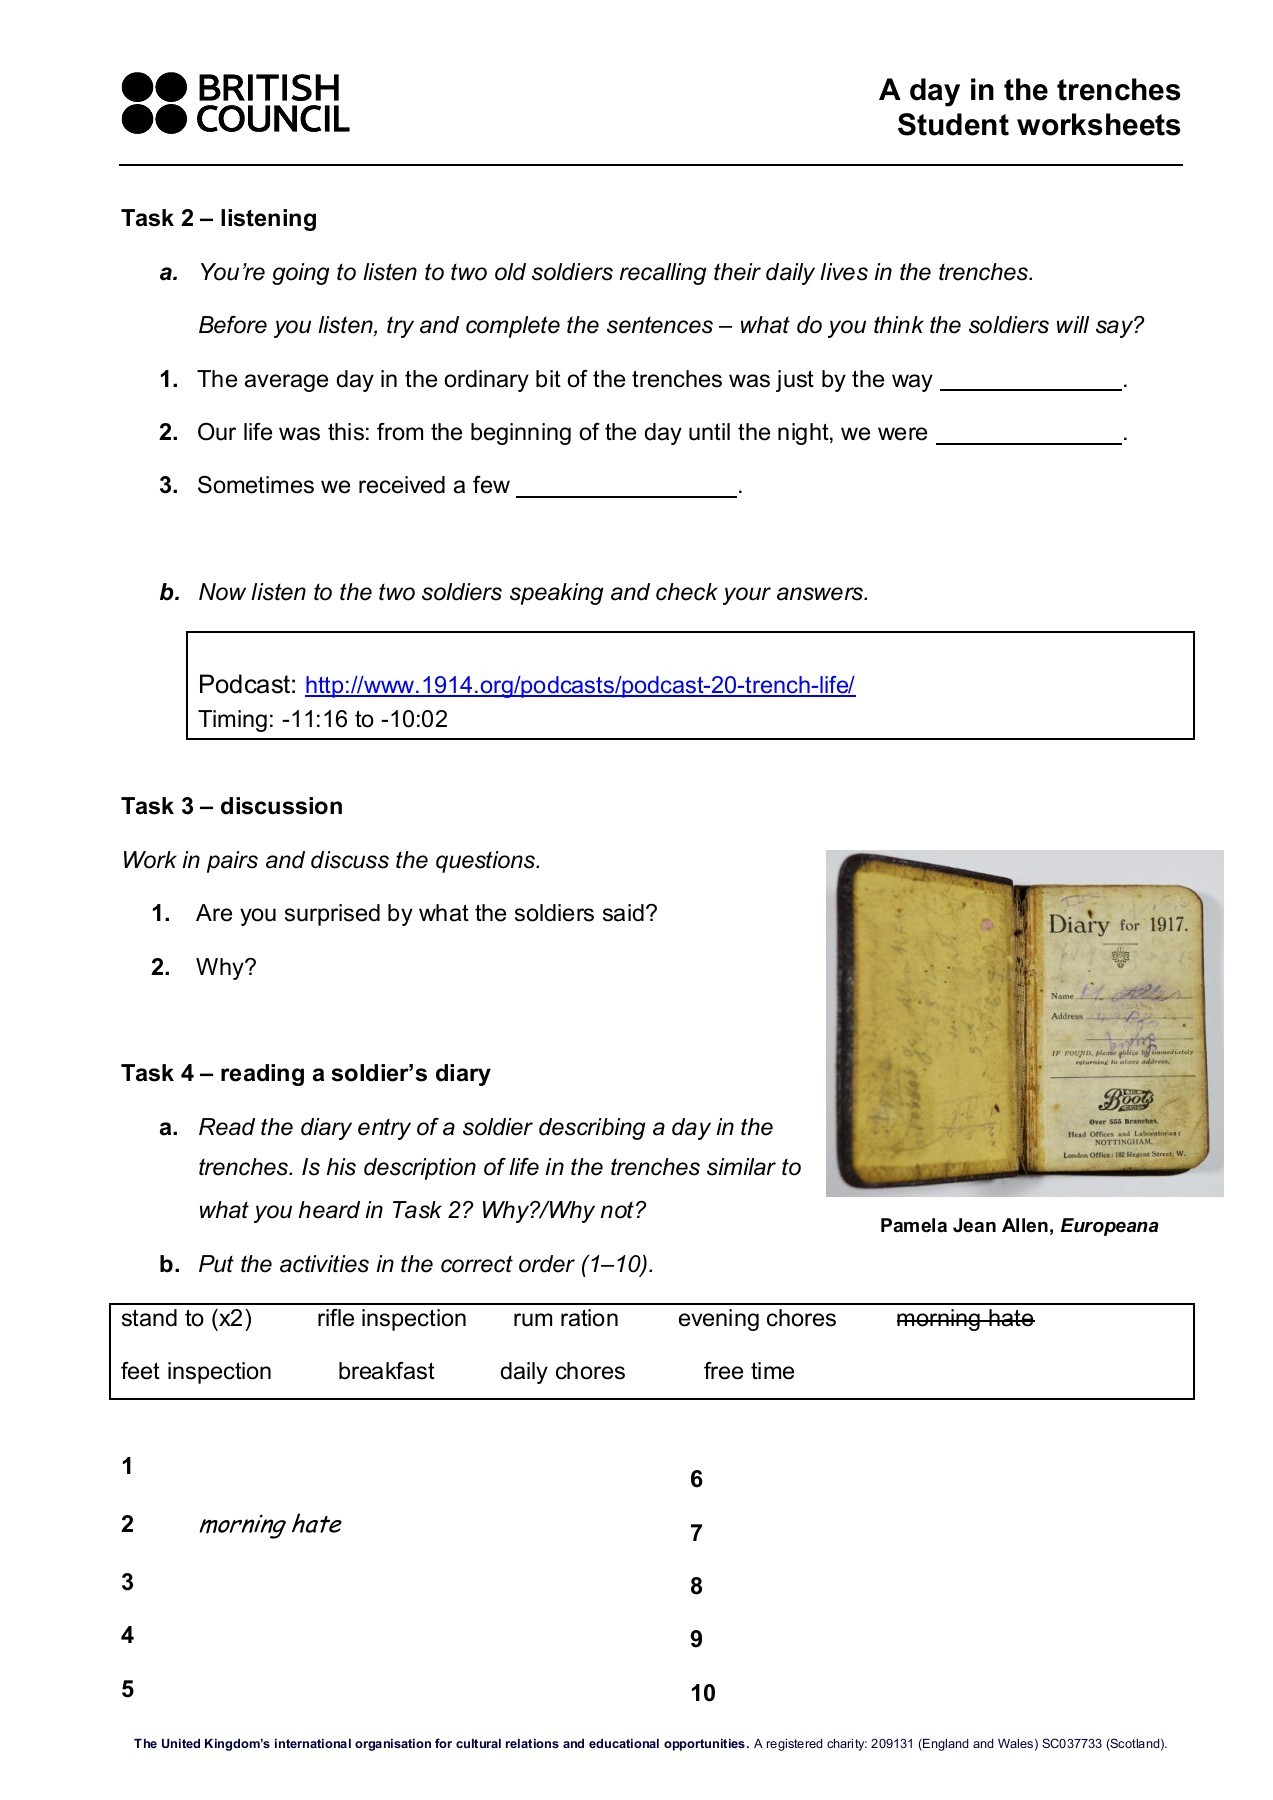 The Trenches Worksheet Answers